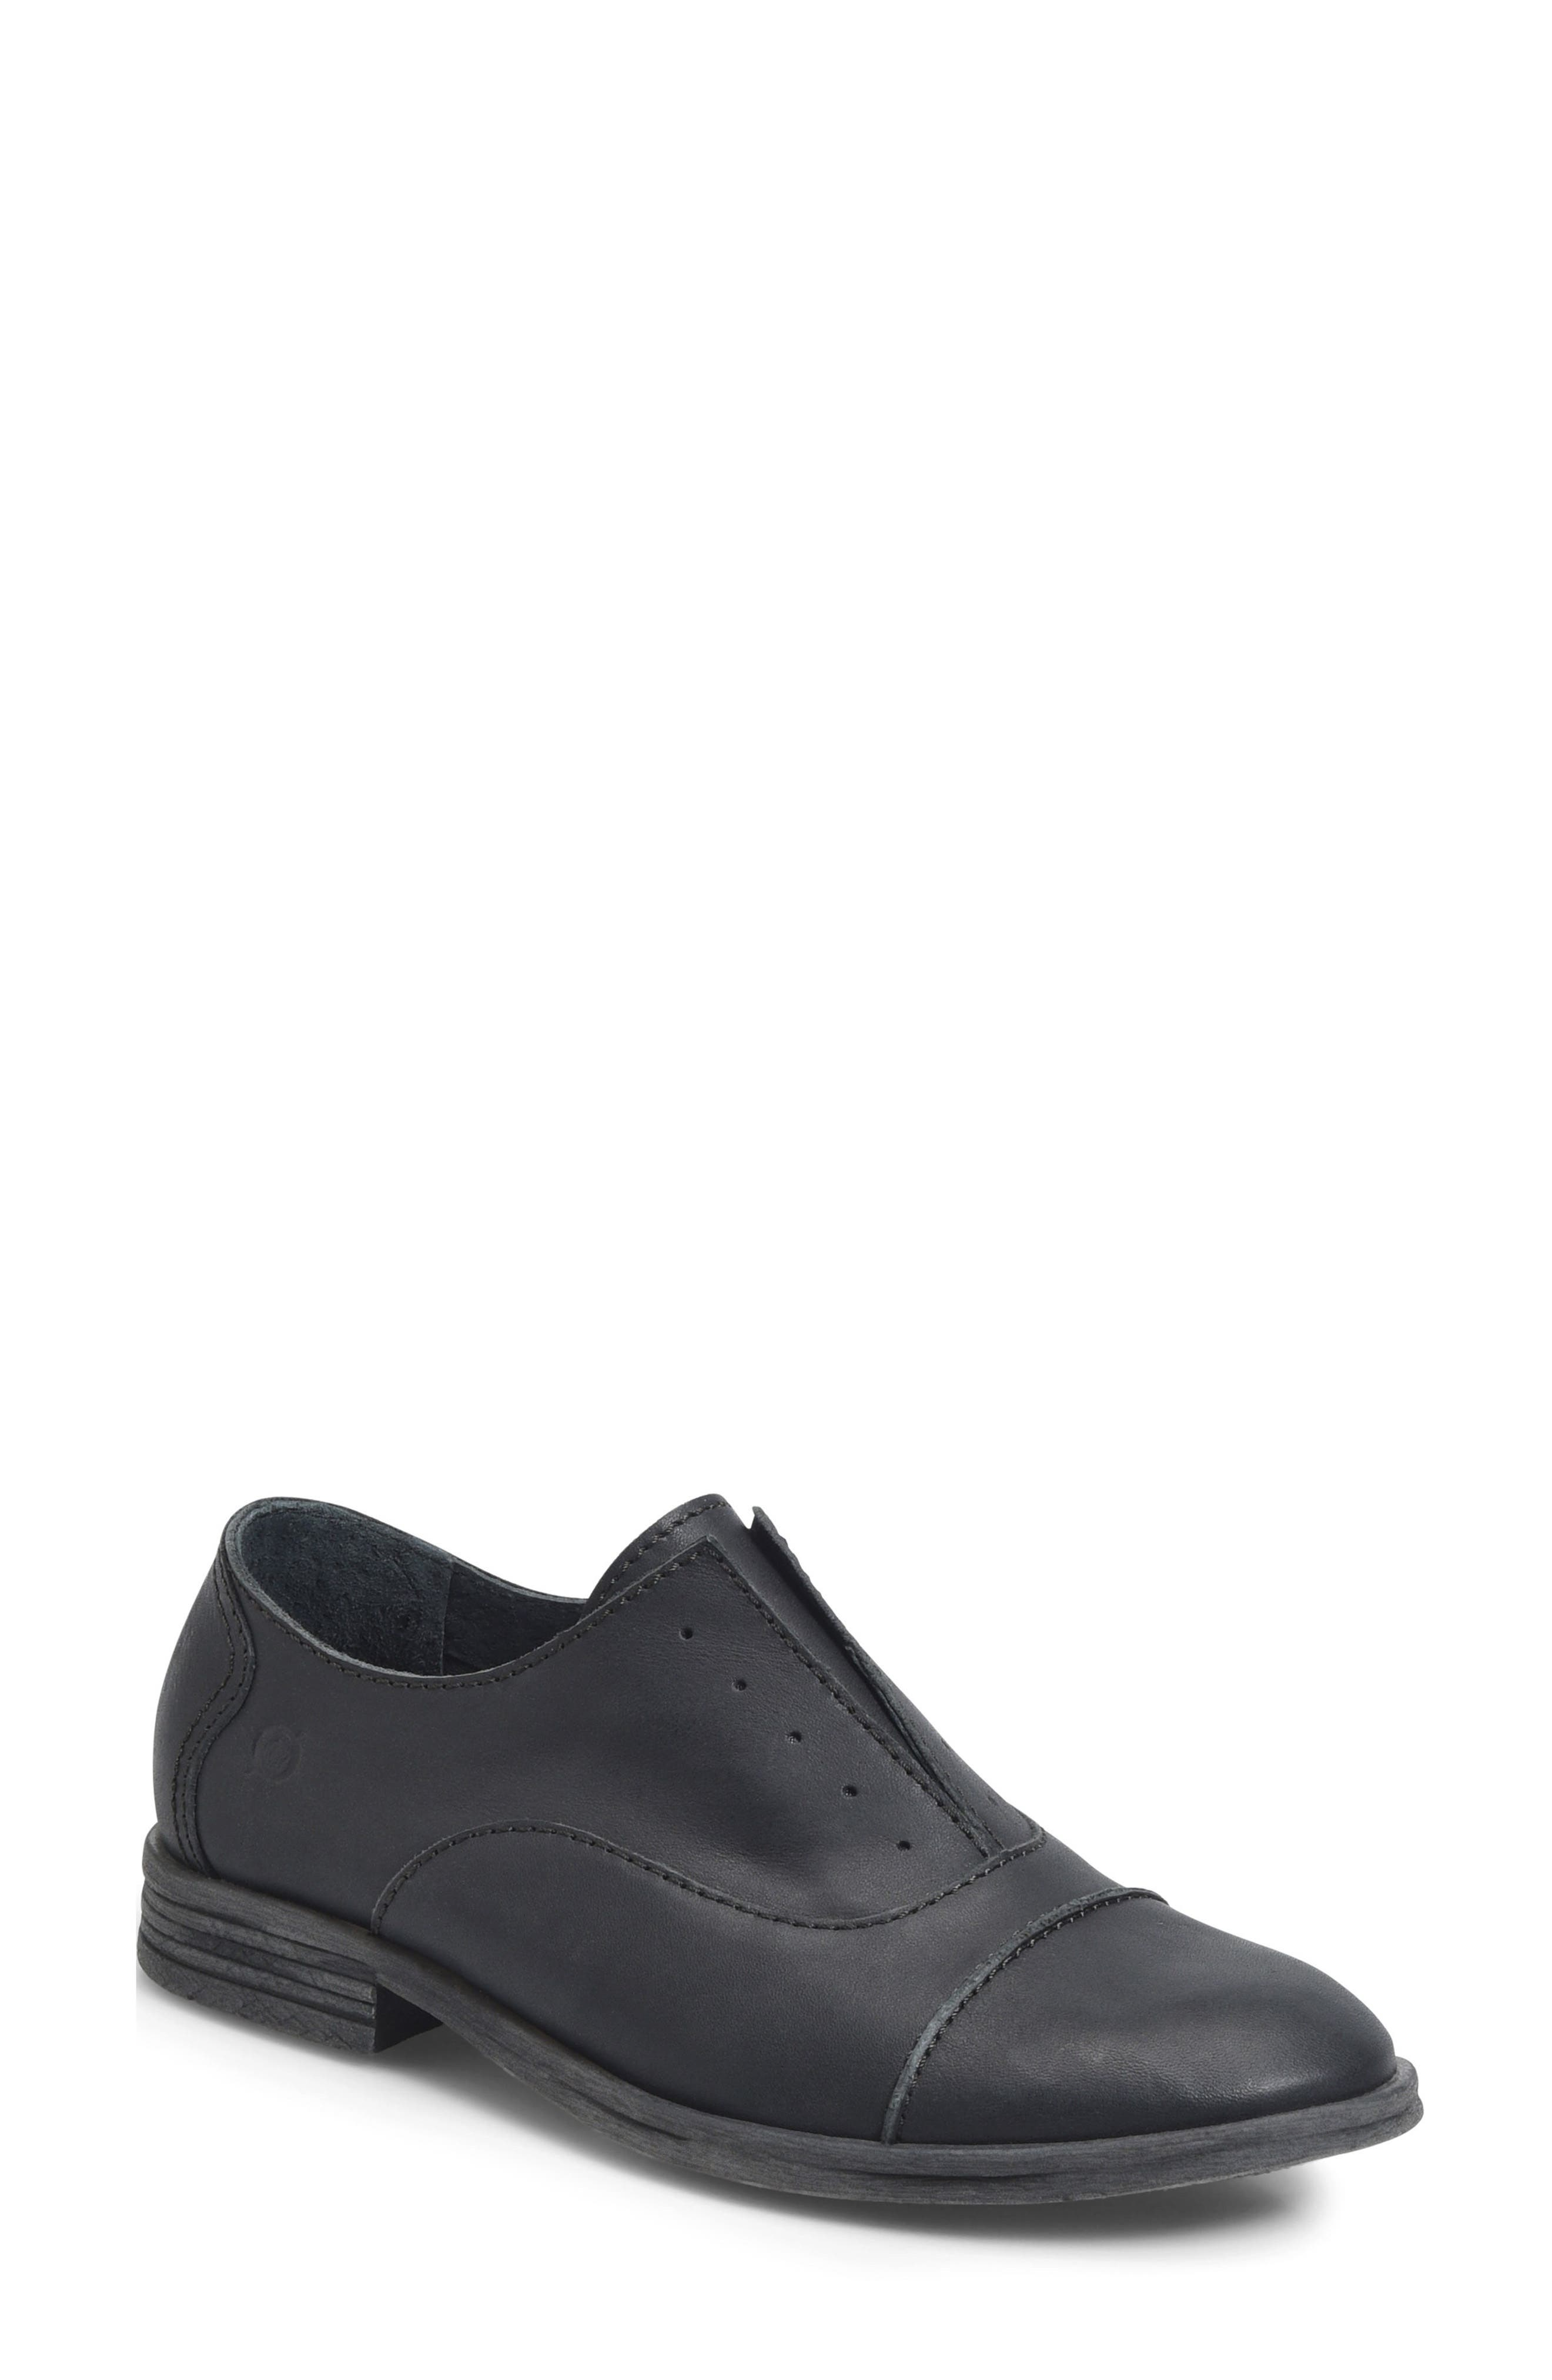 BØRN Forato Slip-On Oxford, Main, color, 001